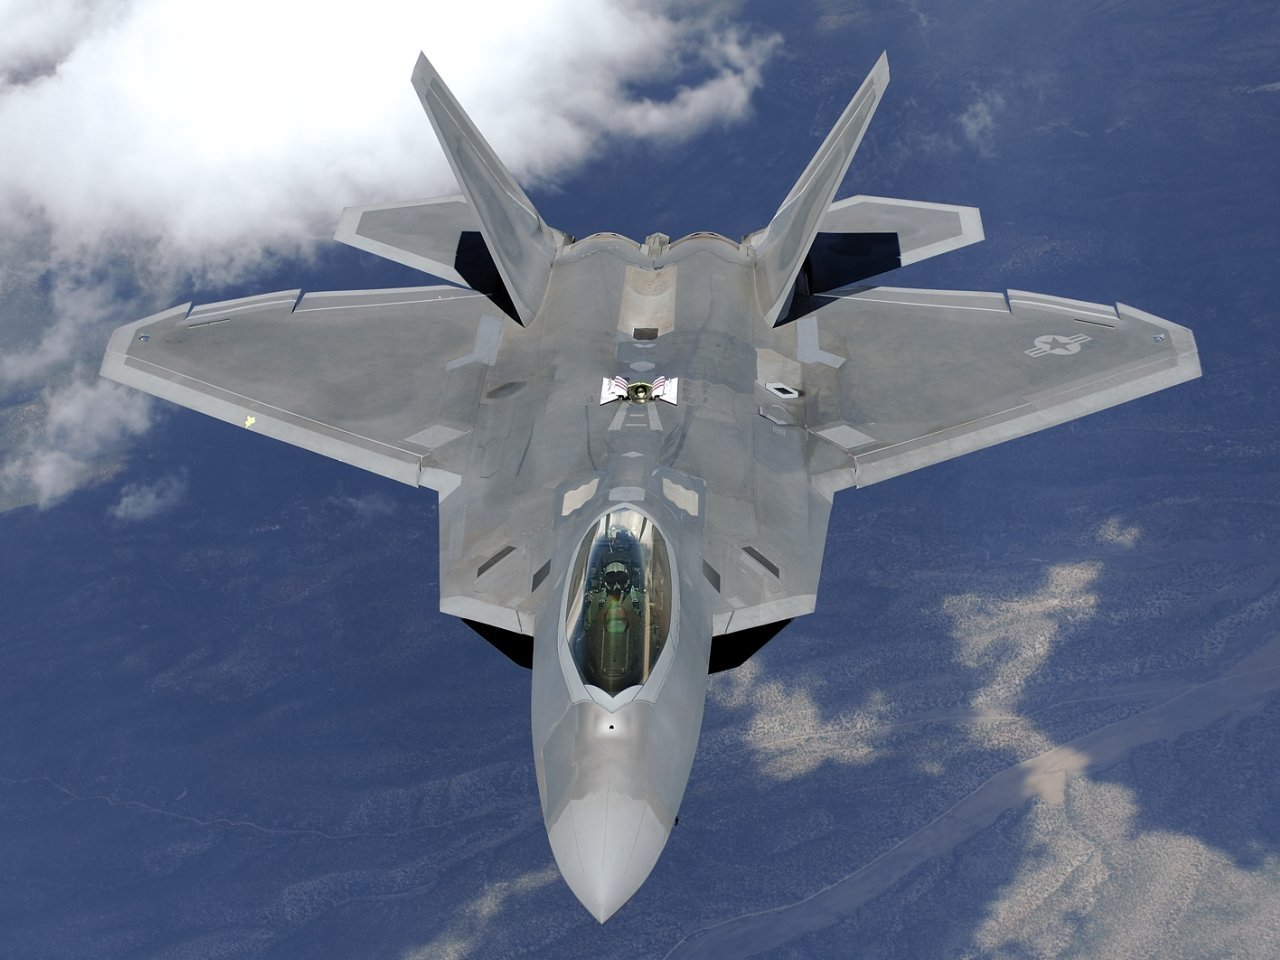 F22 Wallpaper 8533 Hd Wallpapers in Aircraft   Imagescicom 1280x960